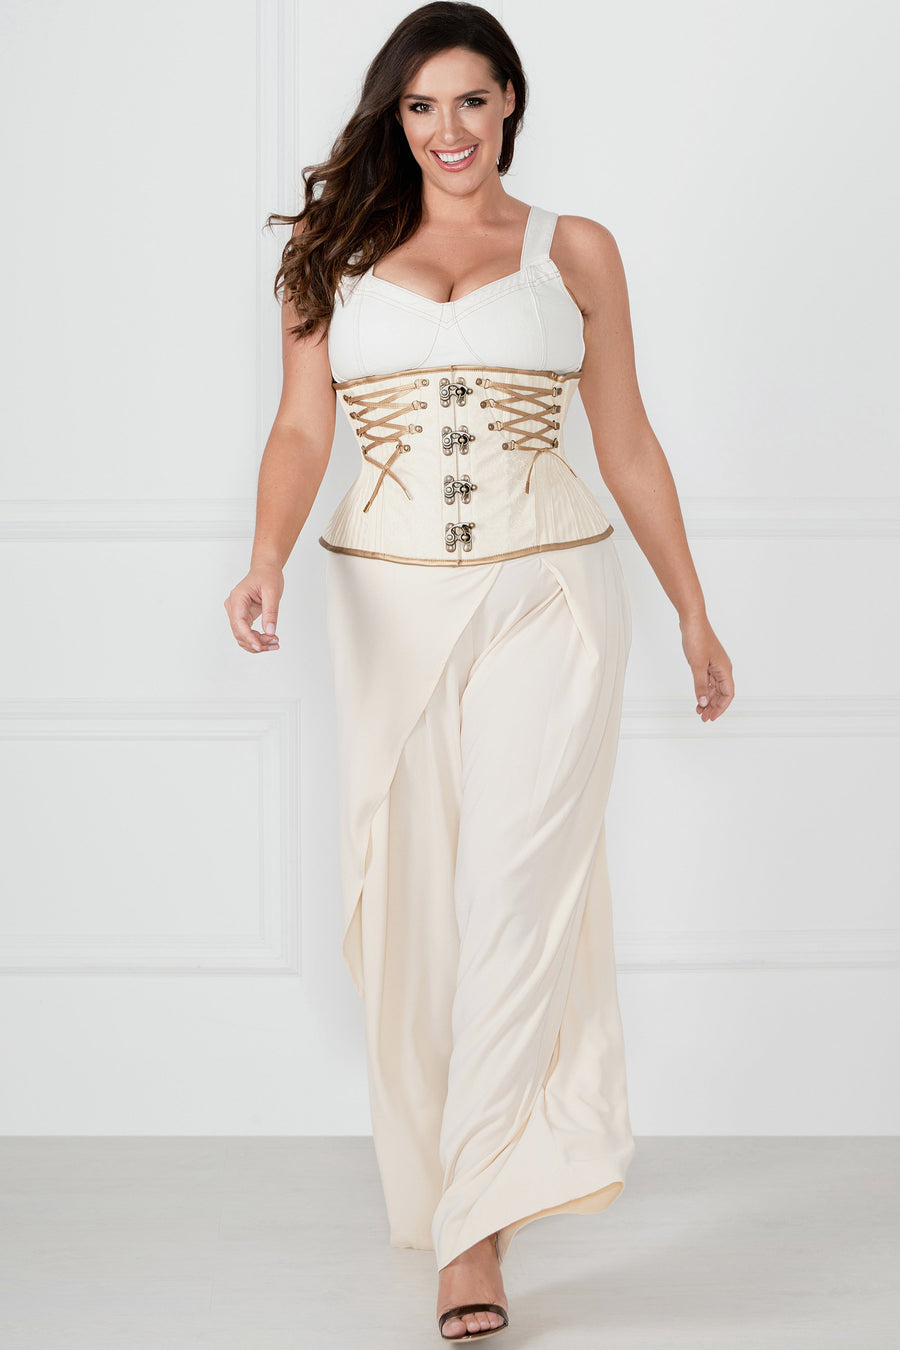 Ivory Underbust With Gold Detailing